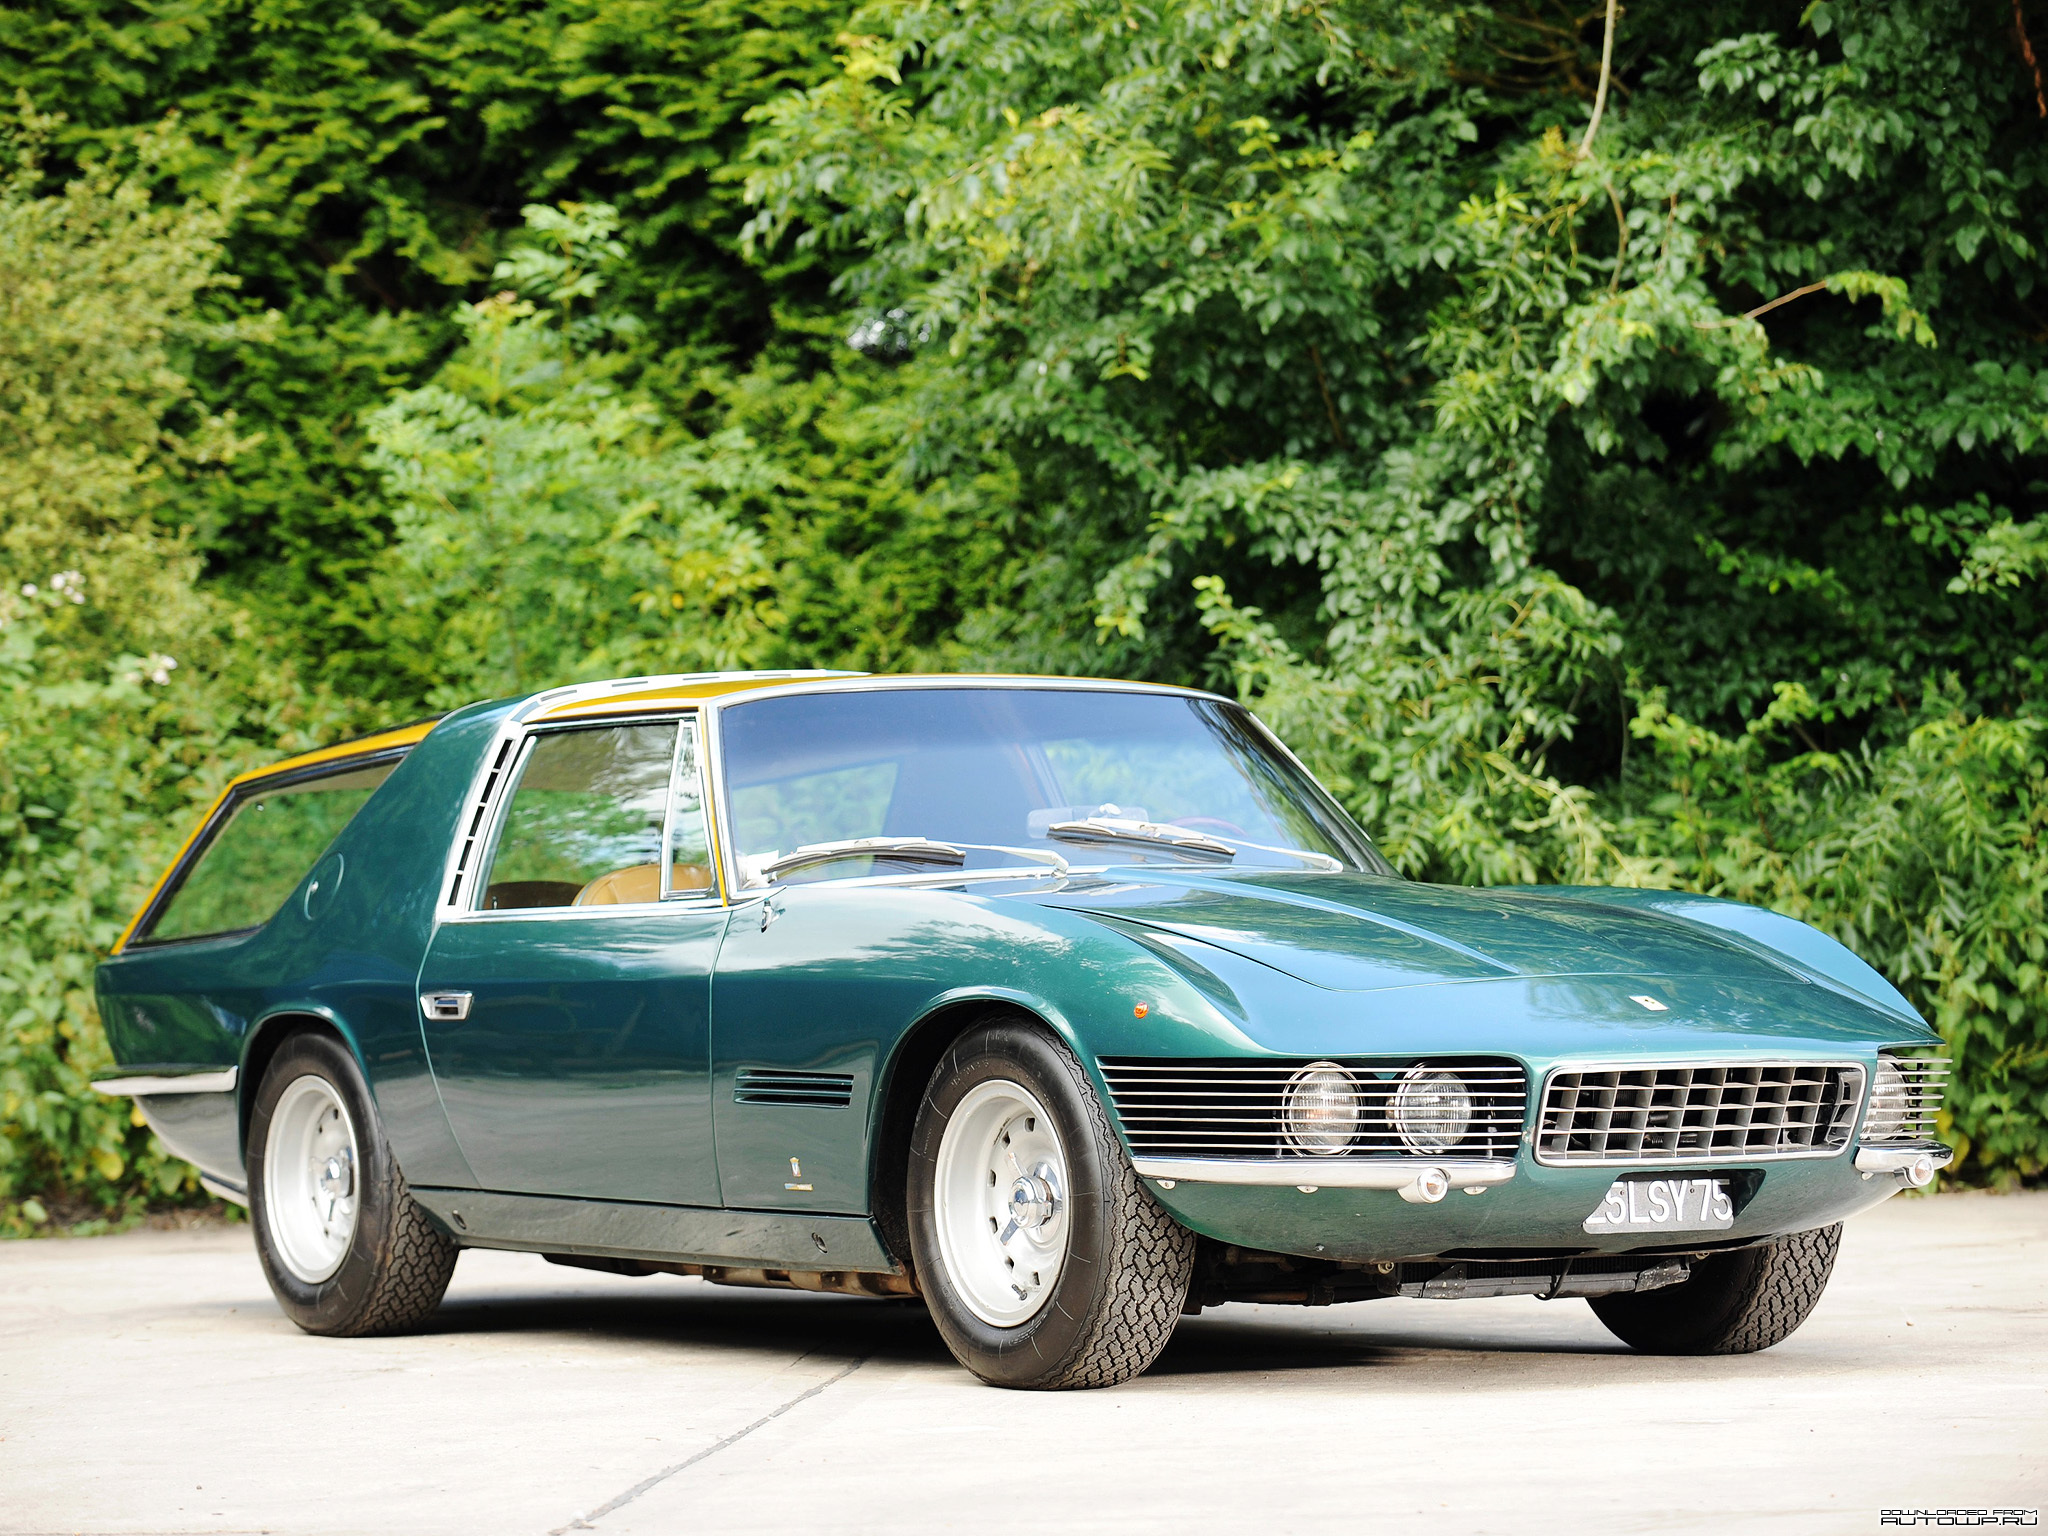 Ferrari shooting brake